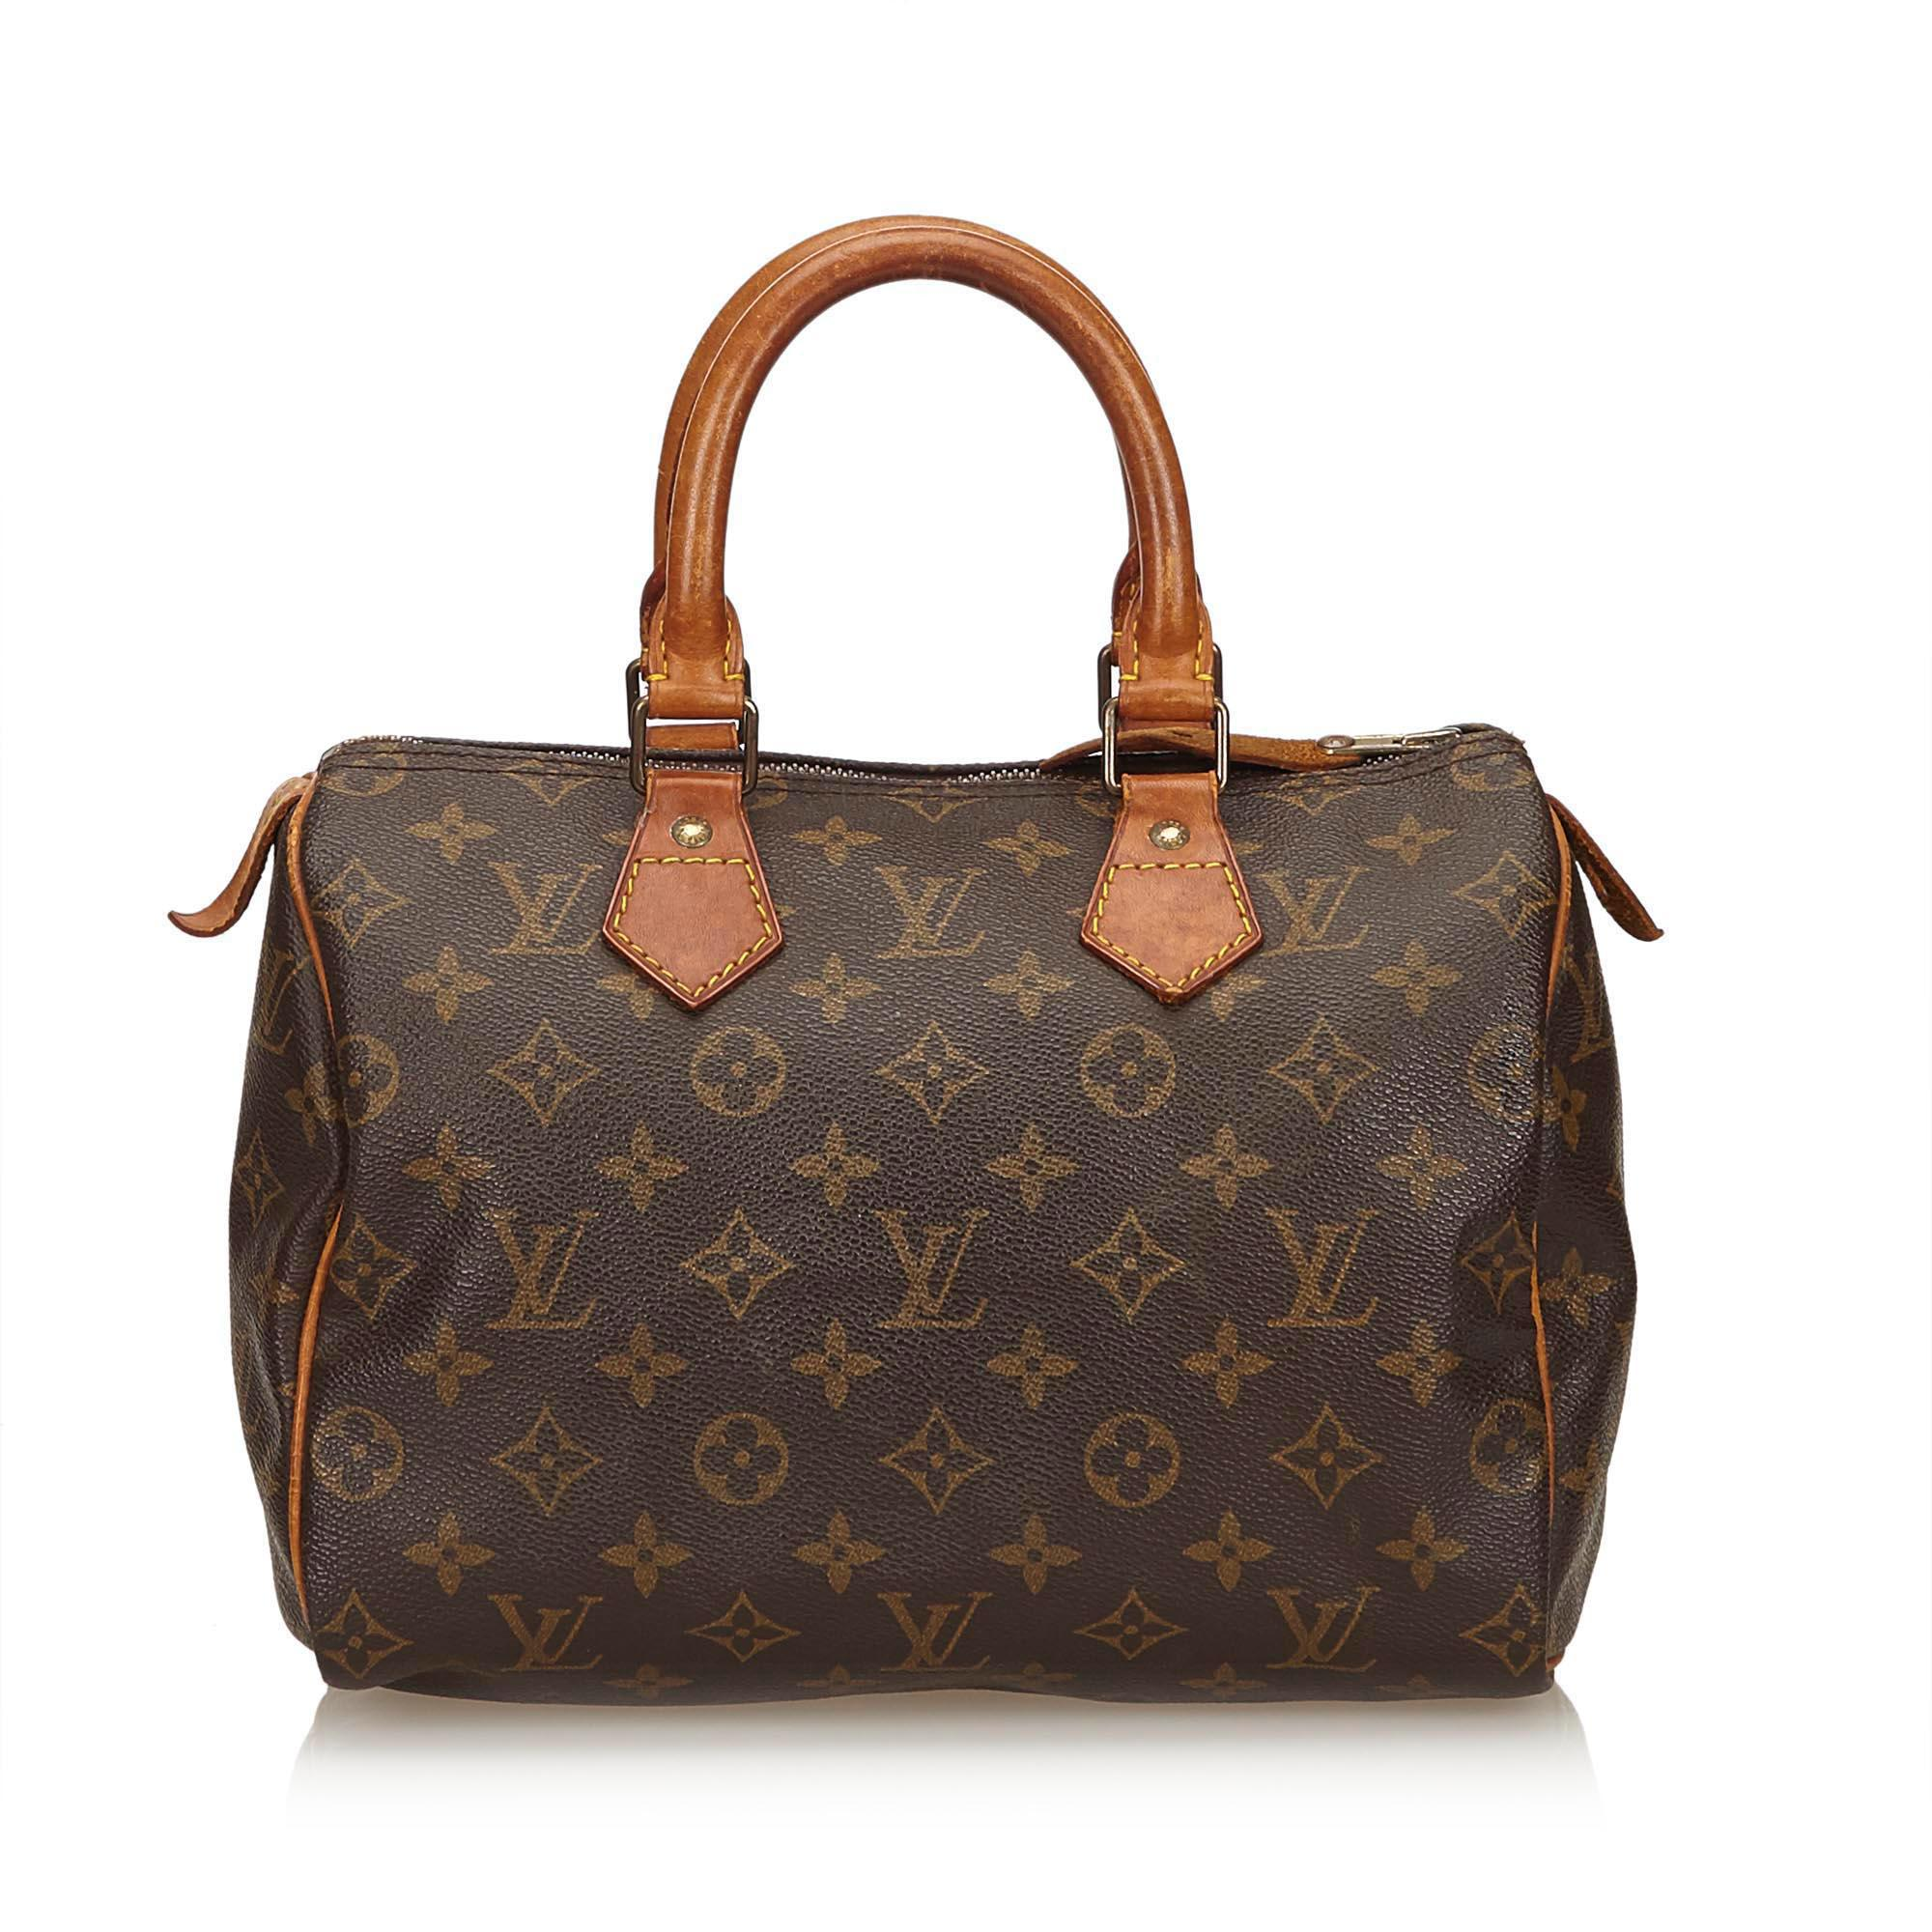 394a8e8e3e14 Lyst - Louis Vuitton Monogram Speedy 25 in Brown - Save ...